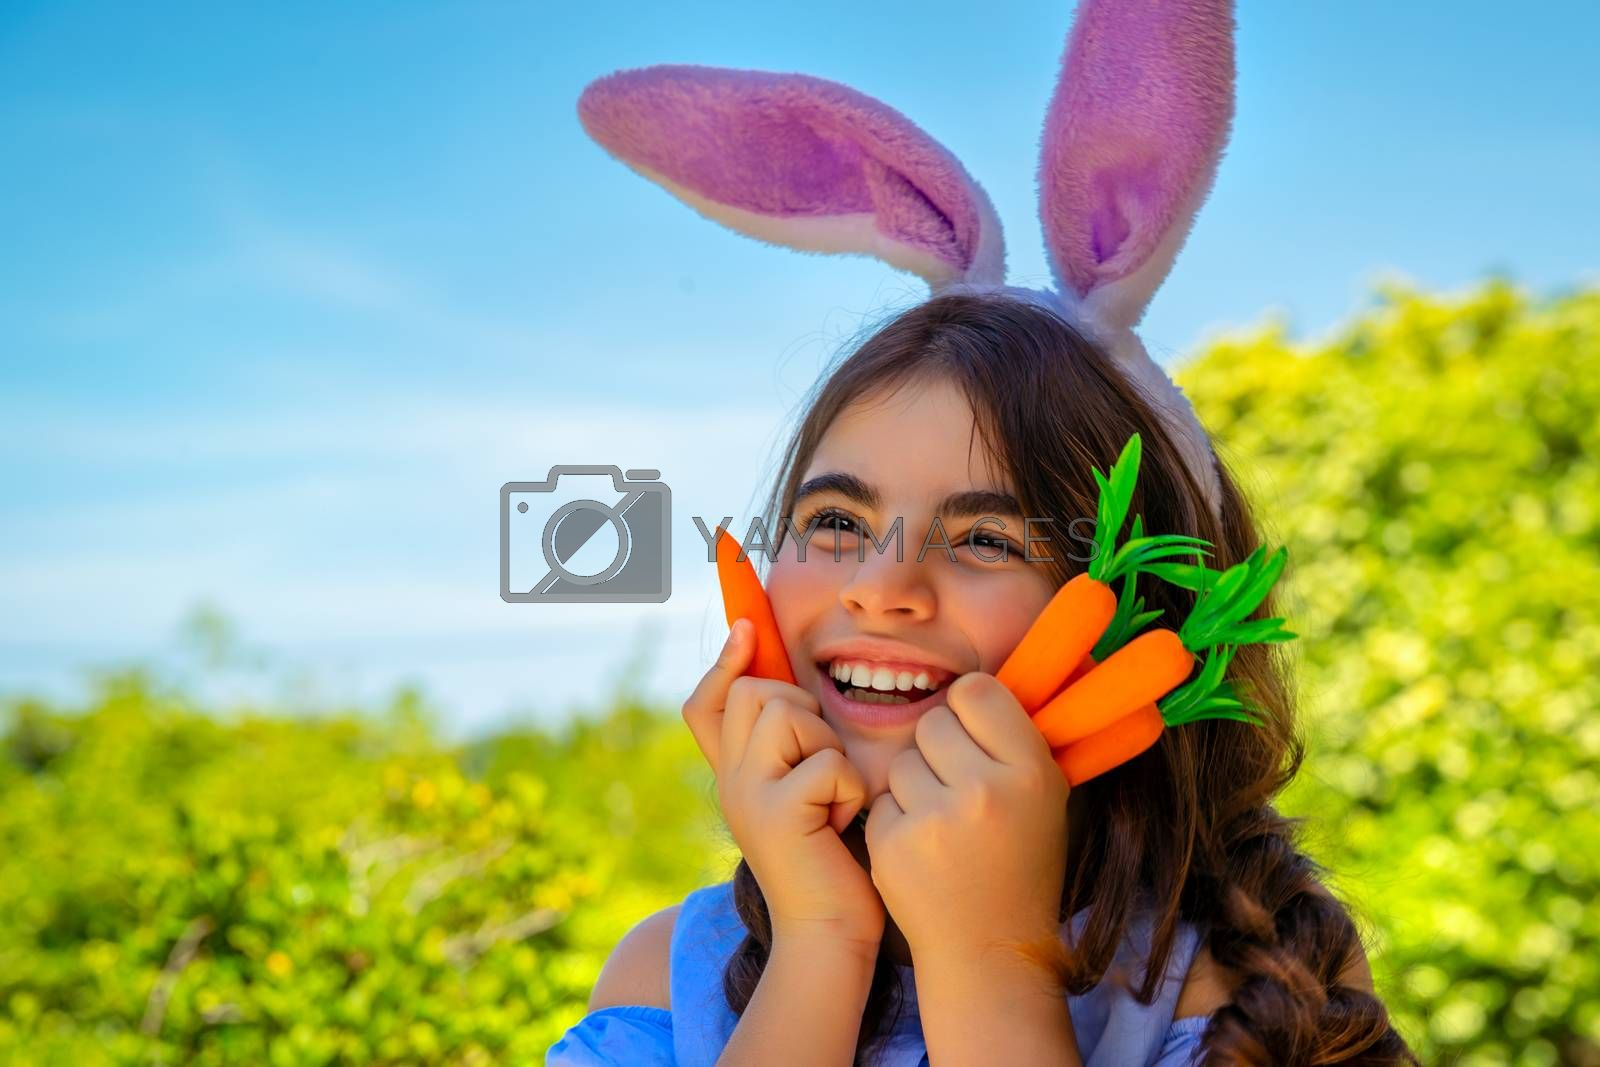 Portrait of a cute little bunny girl with carrots in hands enjoying Easter, having fun gardening in the yard on a spring sunny day, traditional outfit for Easter celebration, happy Christian holiday